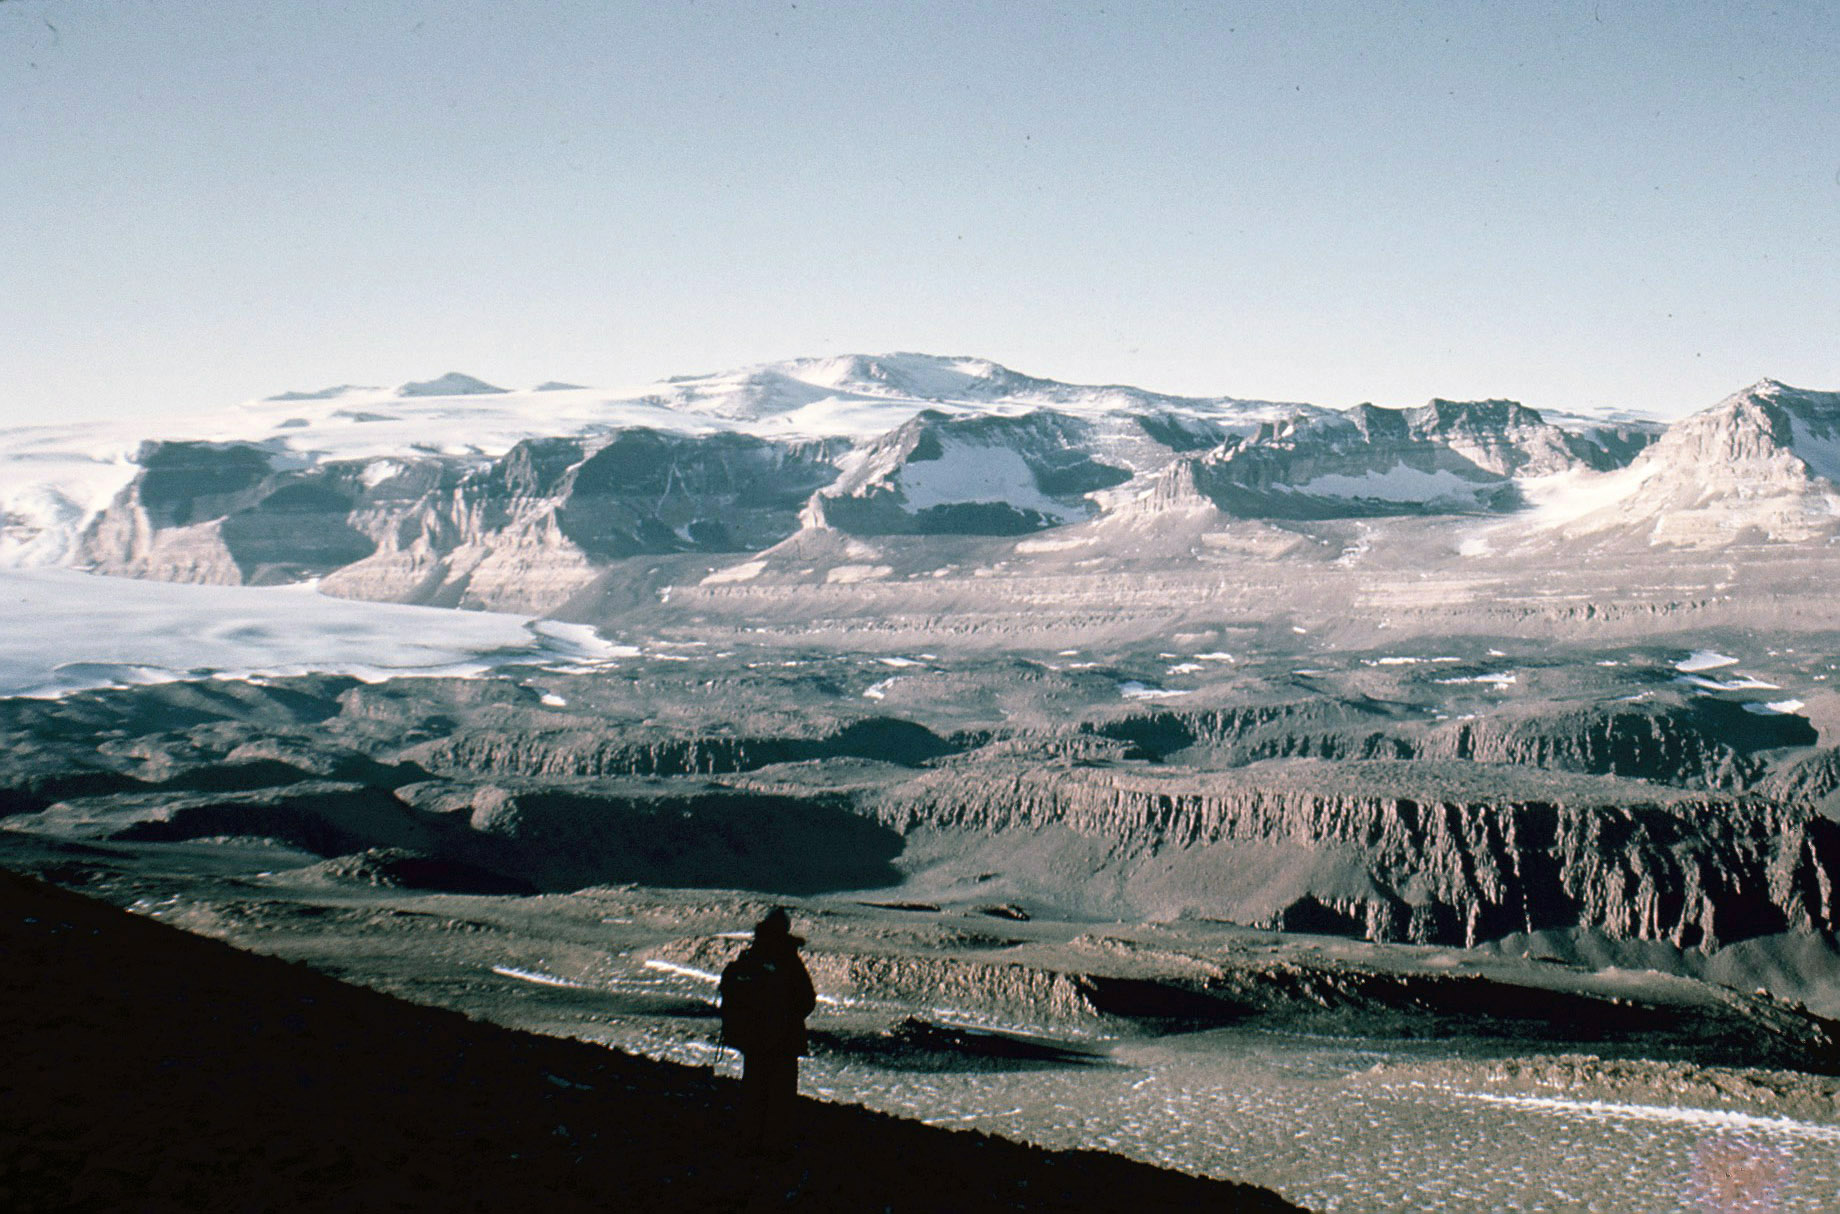 Dry Valleys area, Antarctica